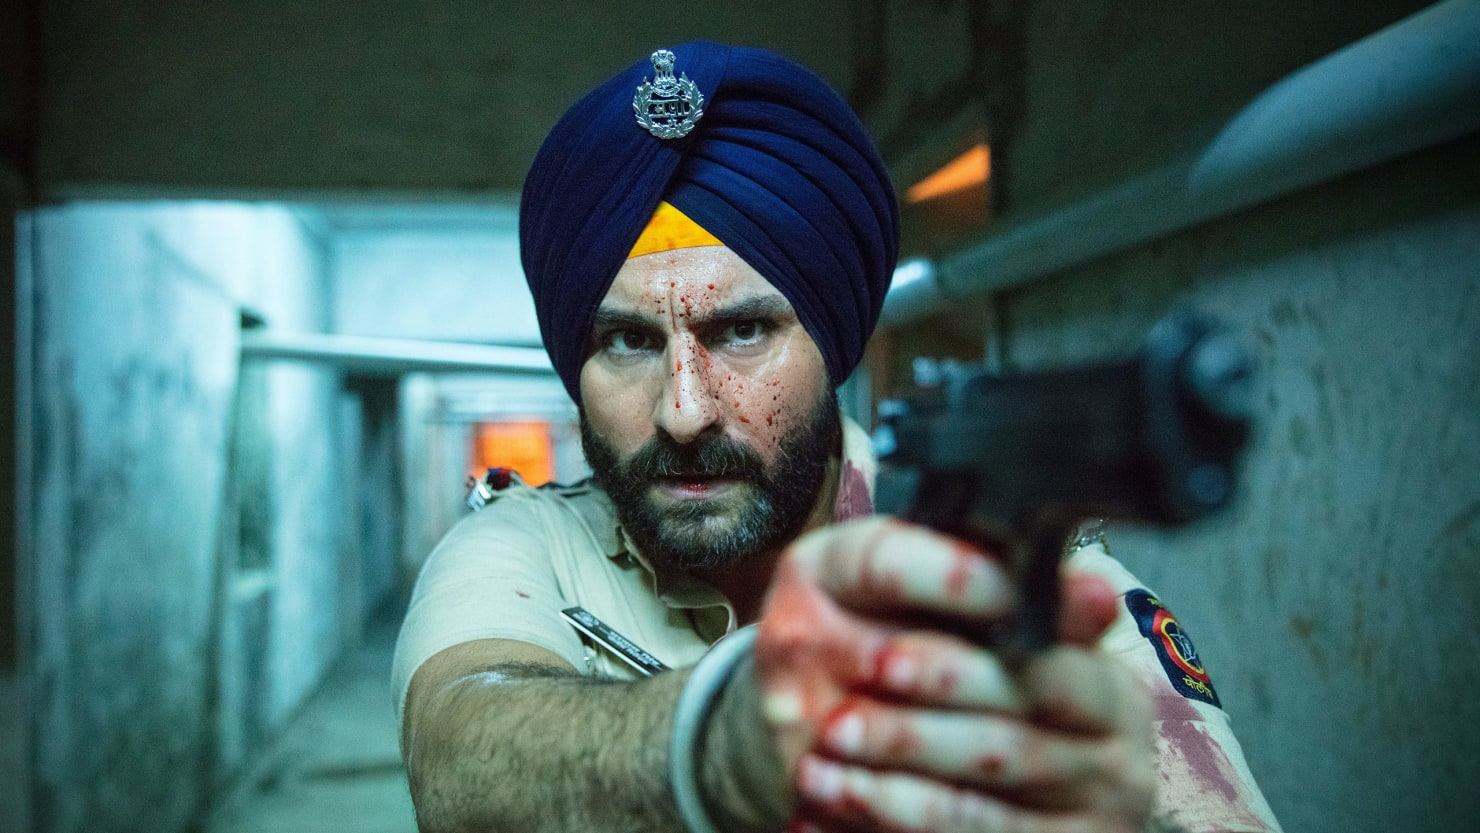 netflix s groundbreaking first original series from india is a bold